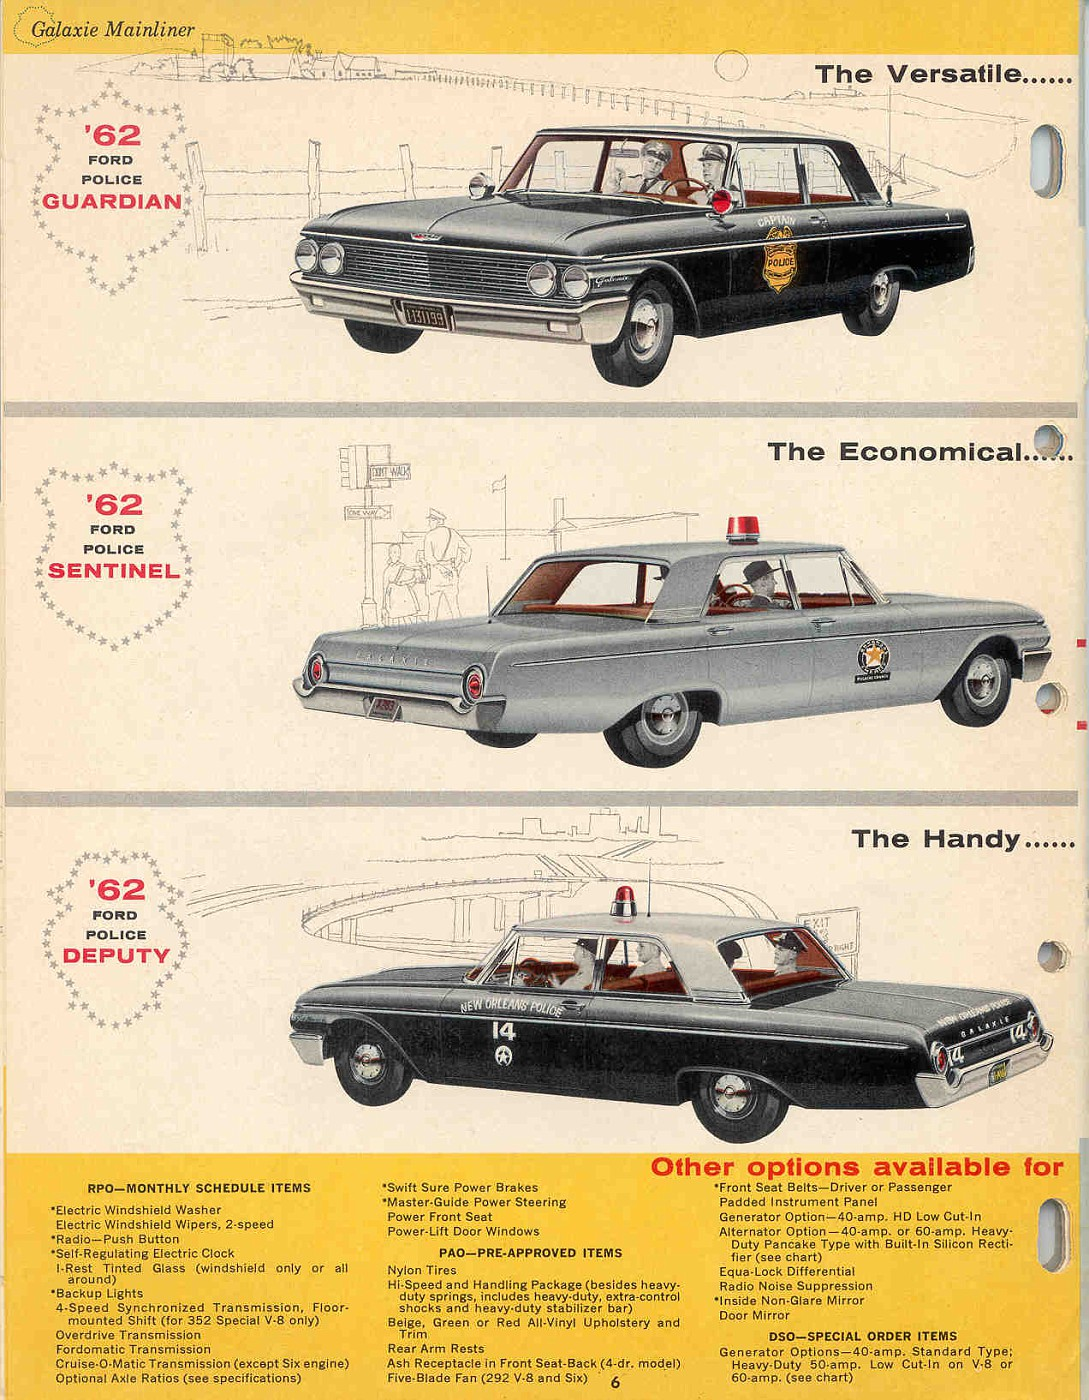 1962 Ford 06